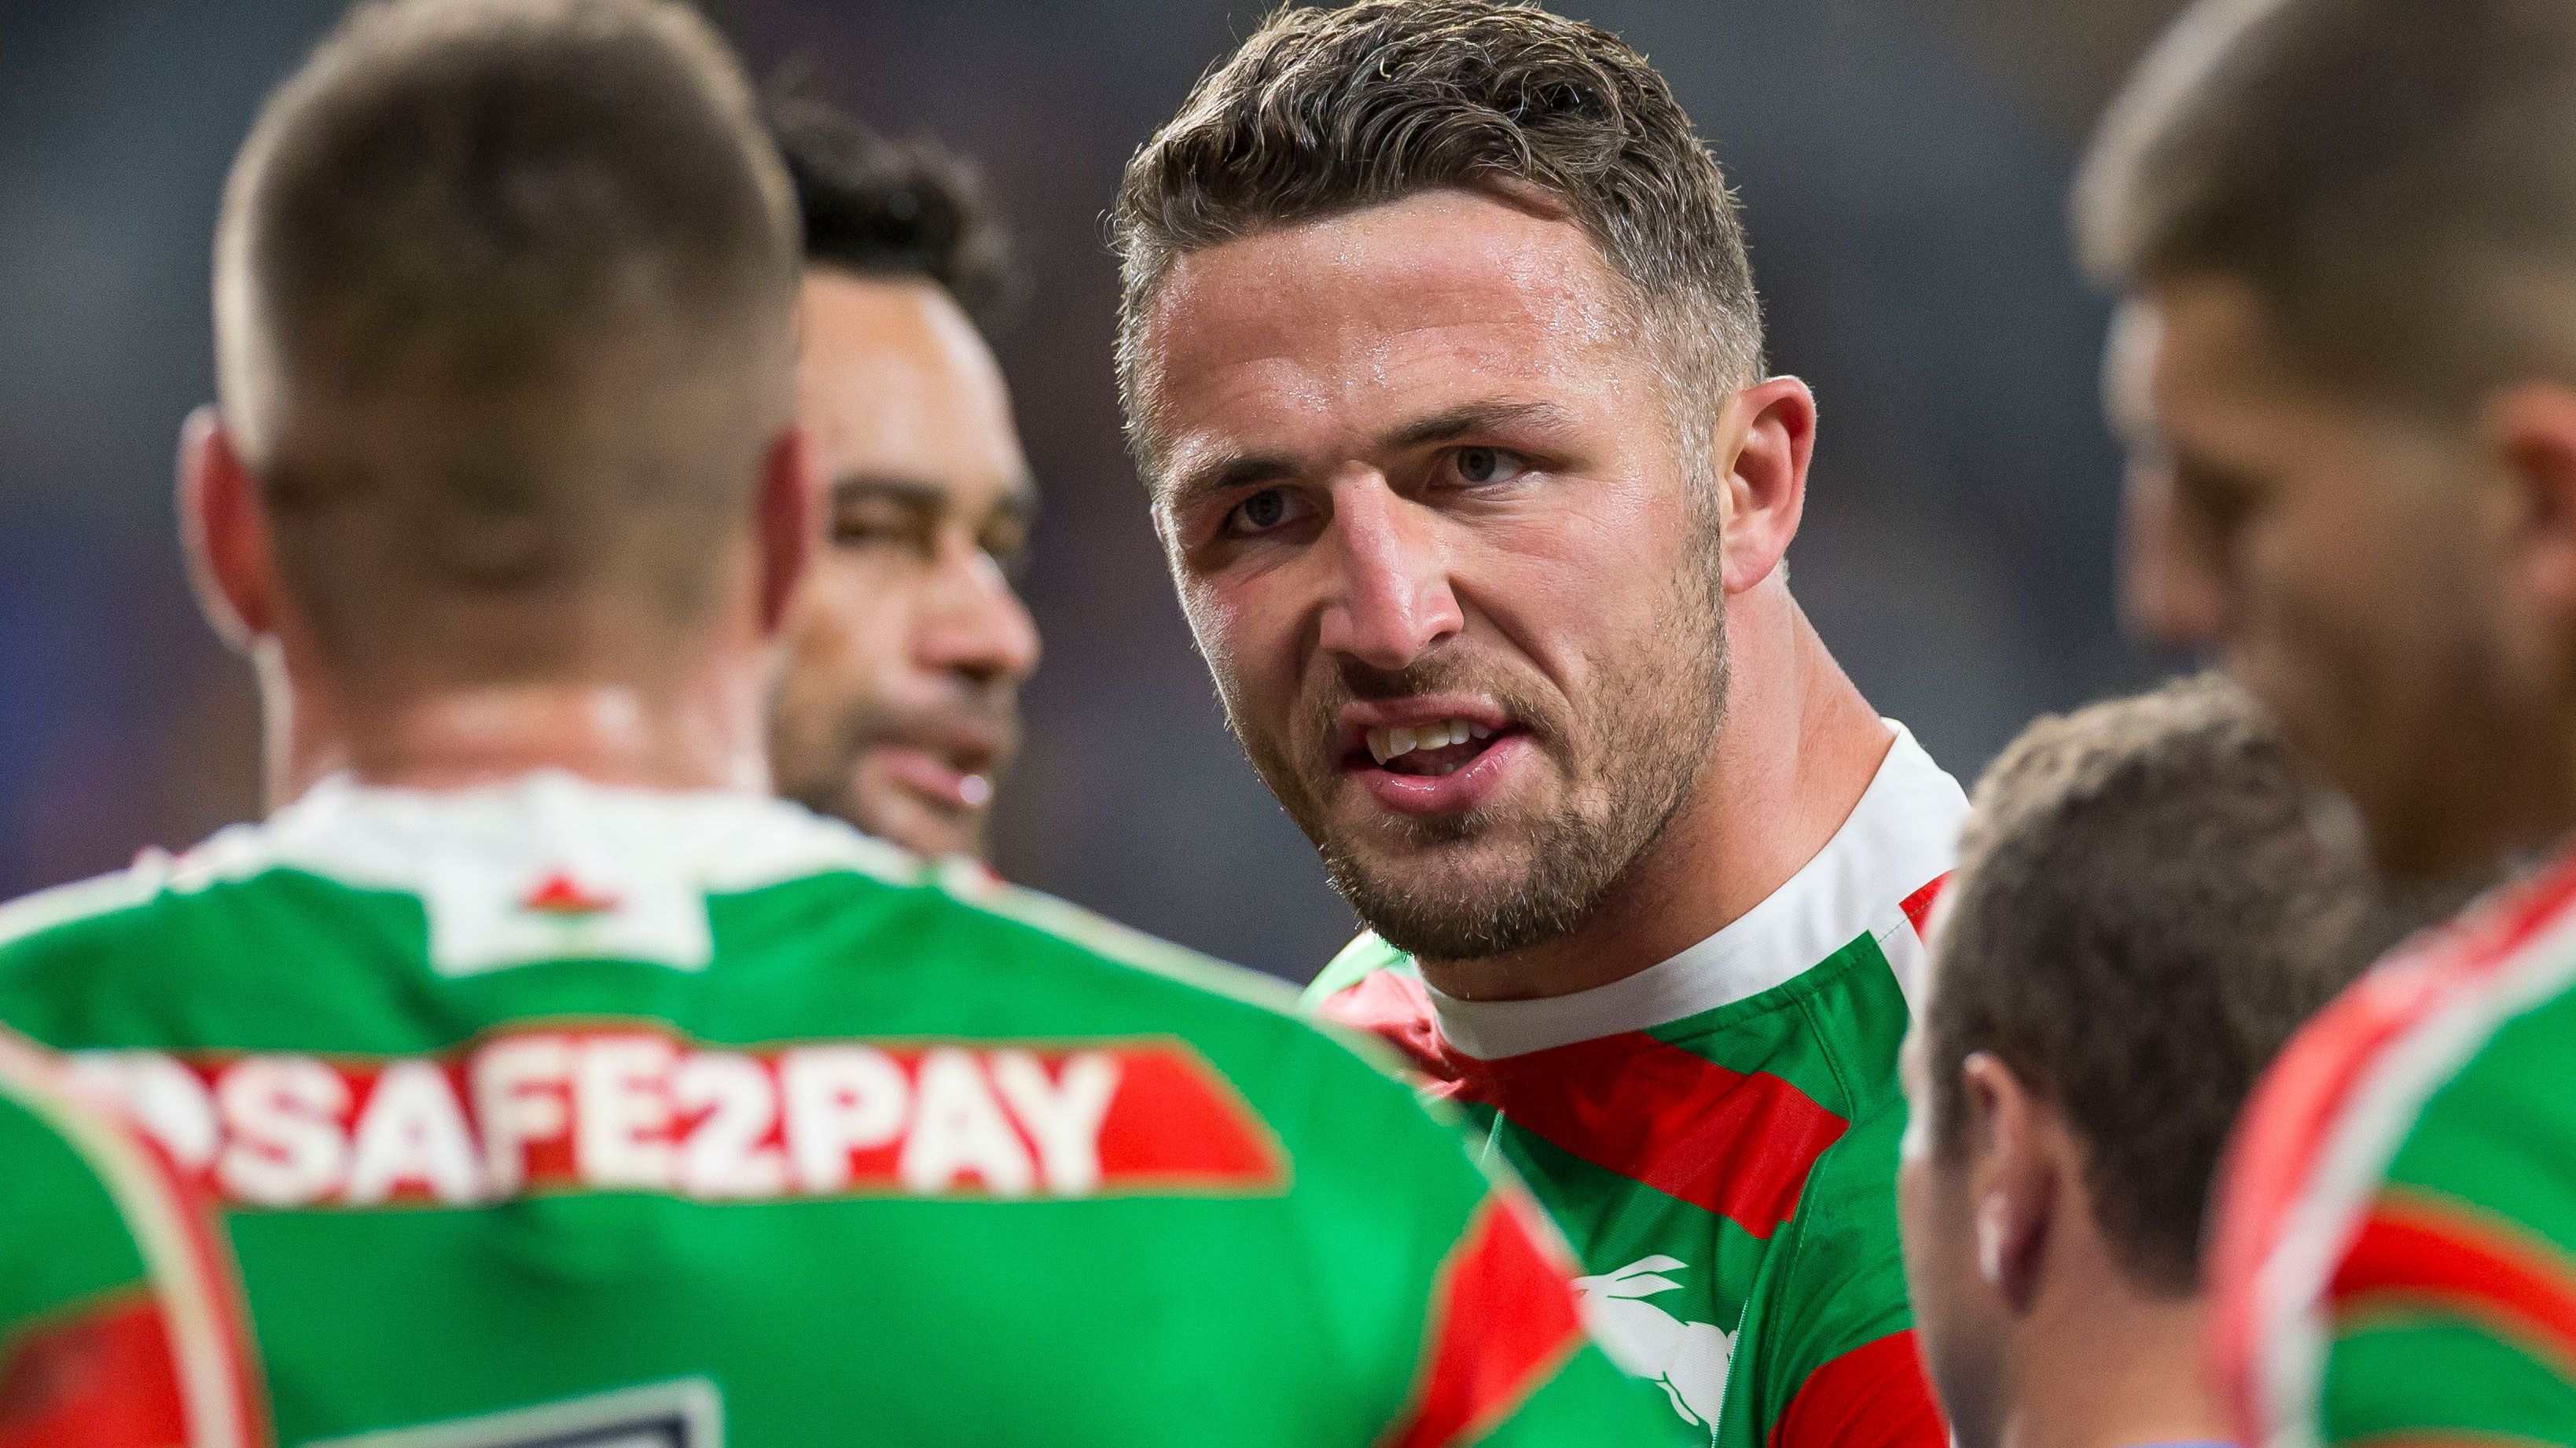 Sam Burgess ruled out indefinitely after surgery complications